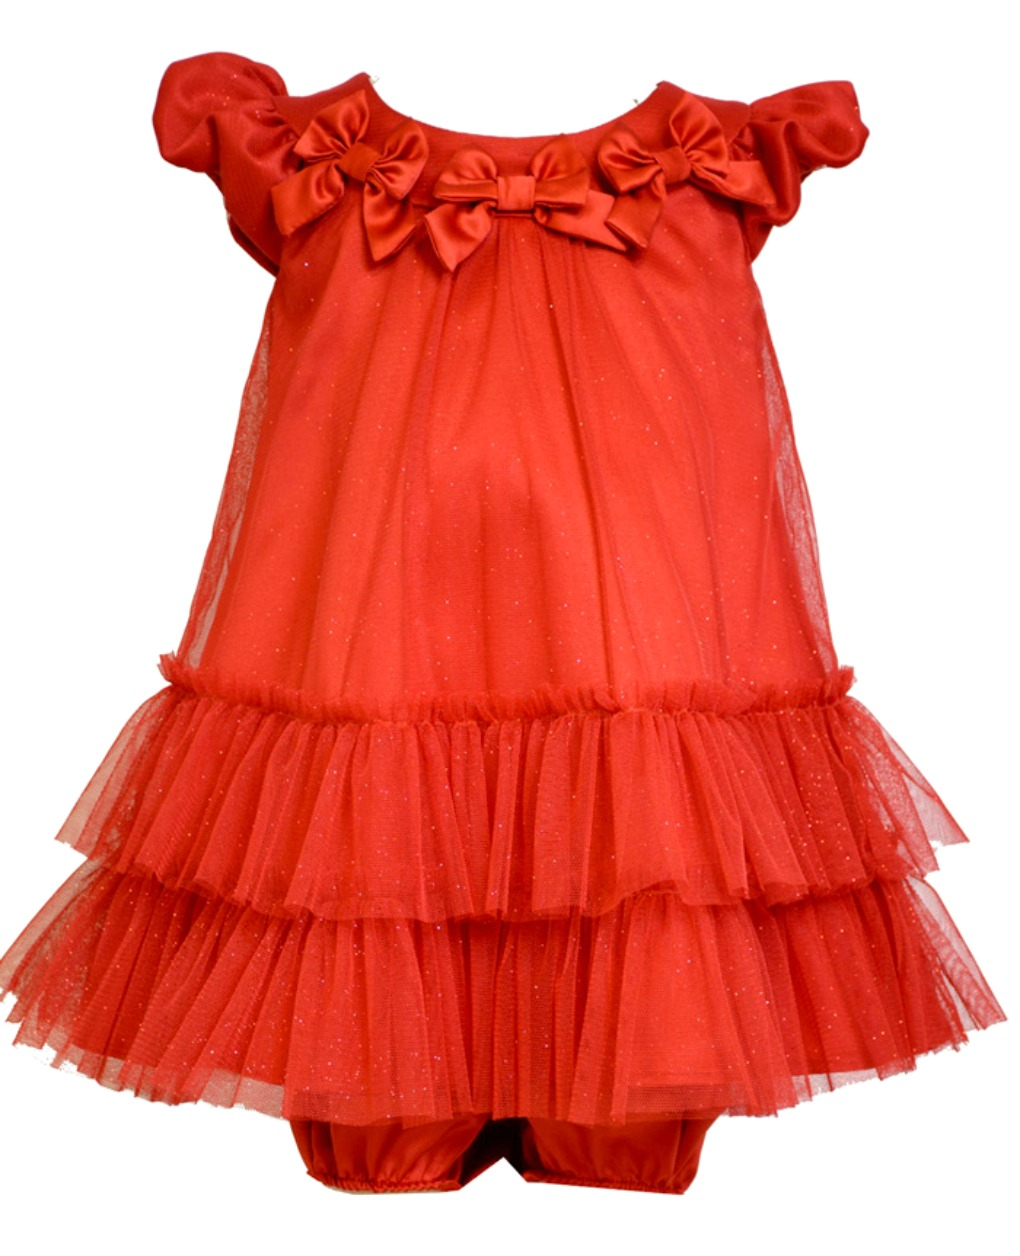 Bonnie Jean Baby Girls Red Mesh Bow Dress 24 months